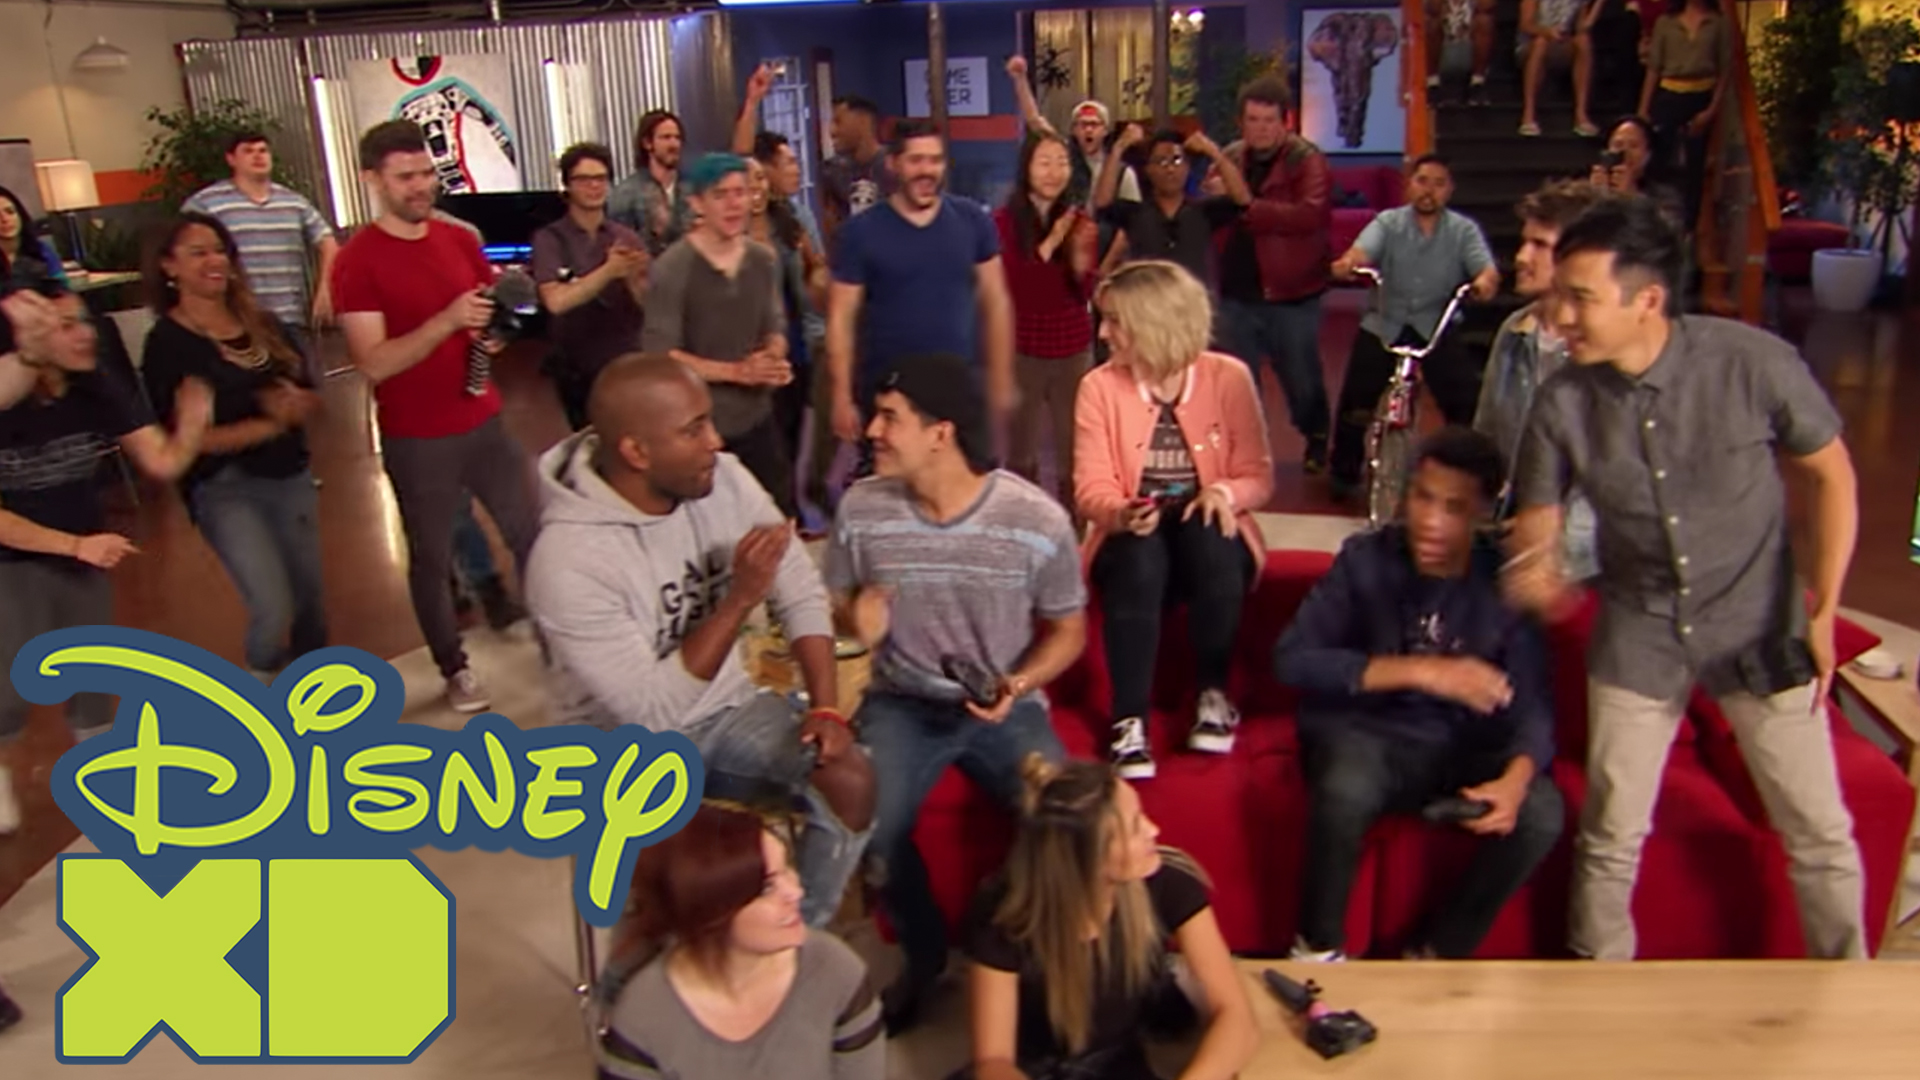 Disney | XD - Polaris PrimeTime   User Generated Content